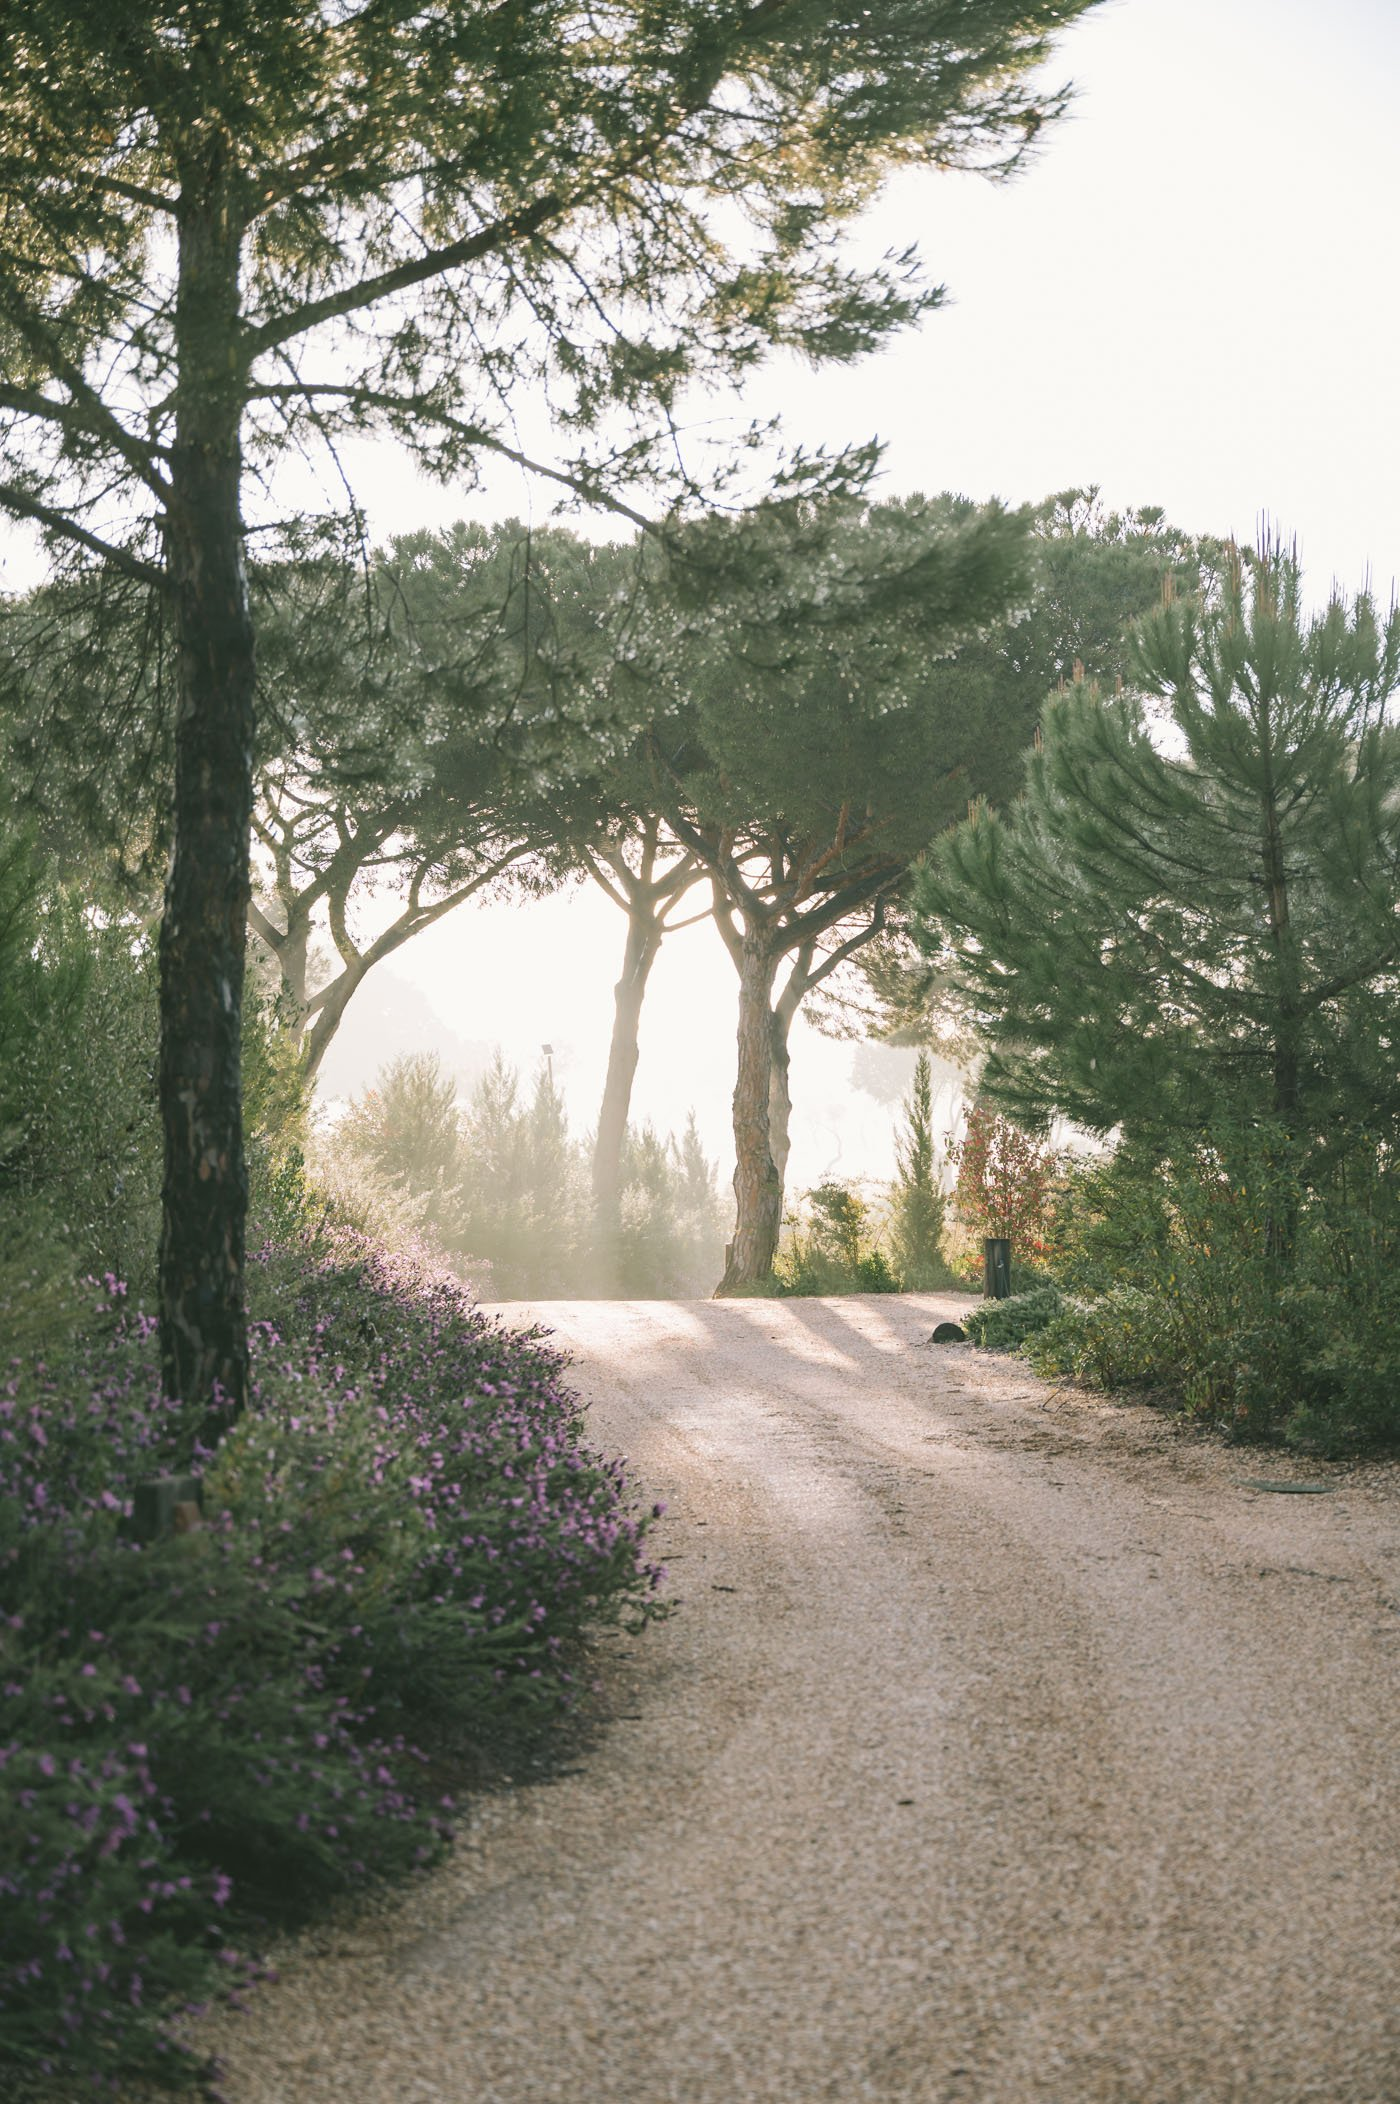 Road within the Sublime Comporta estate